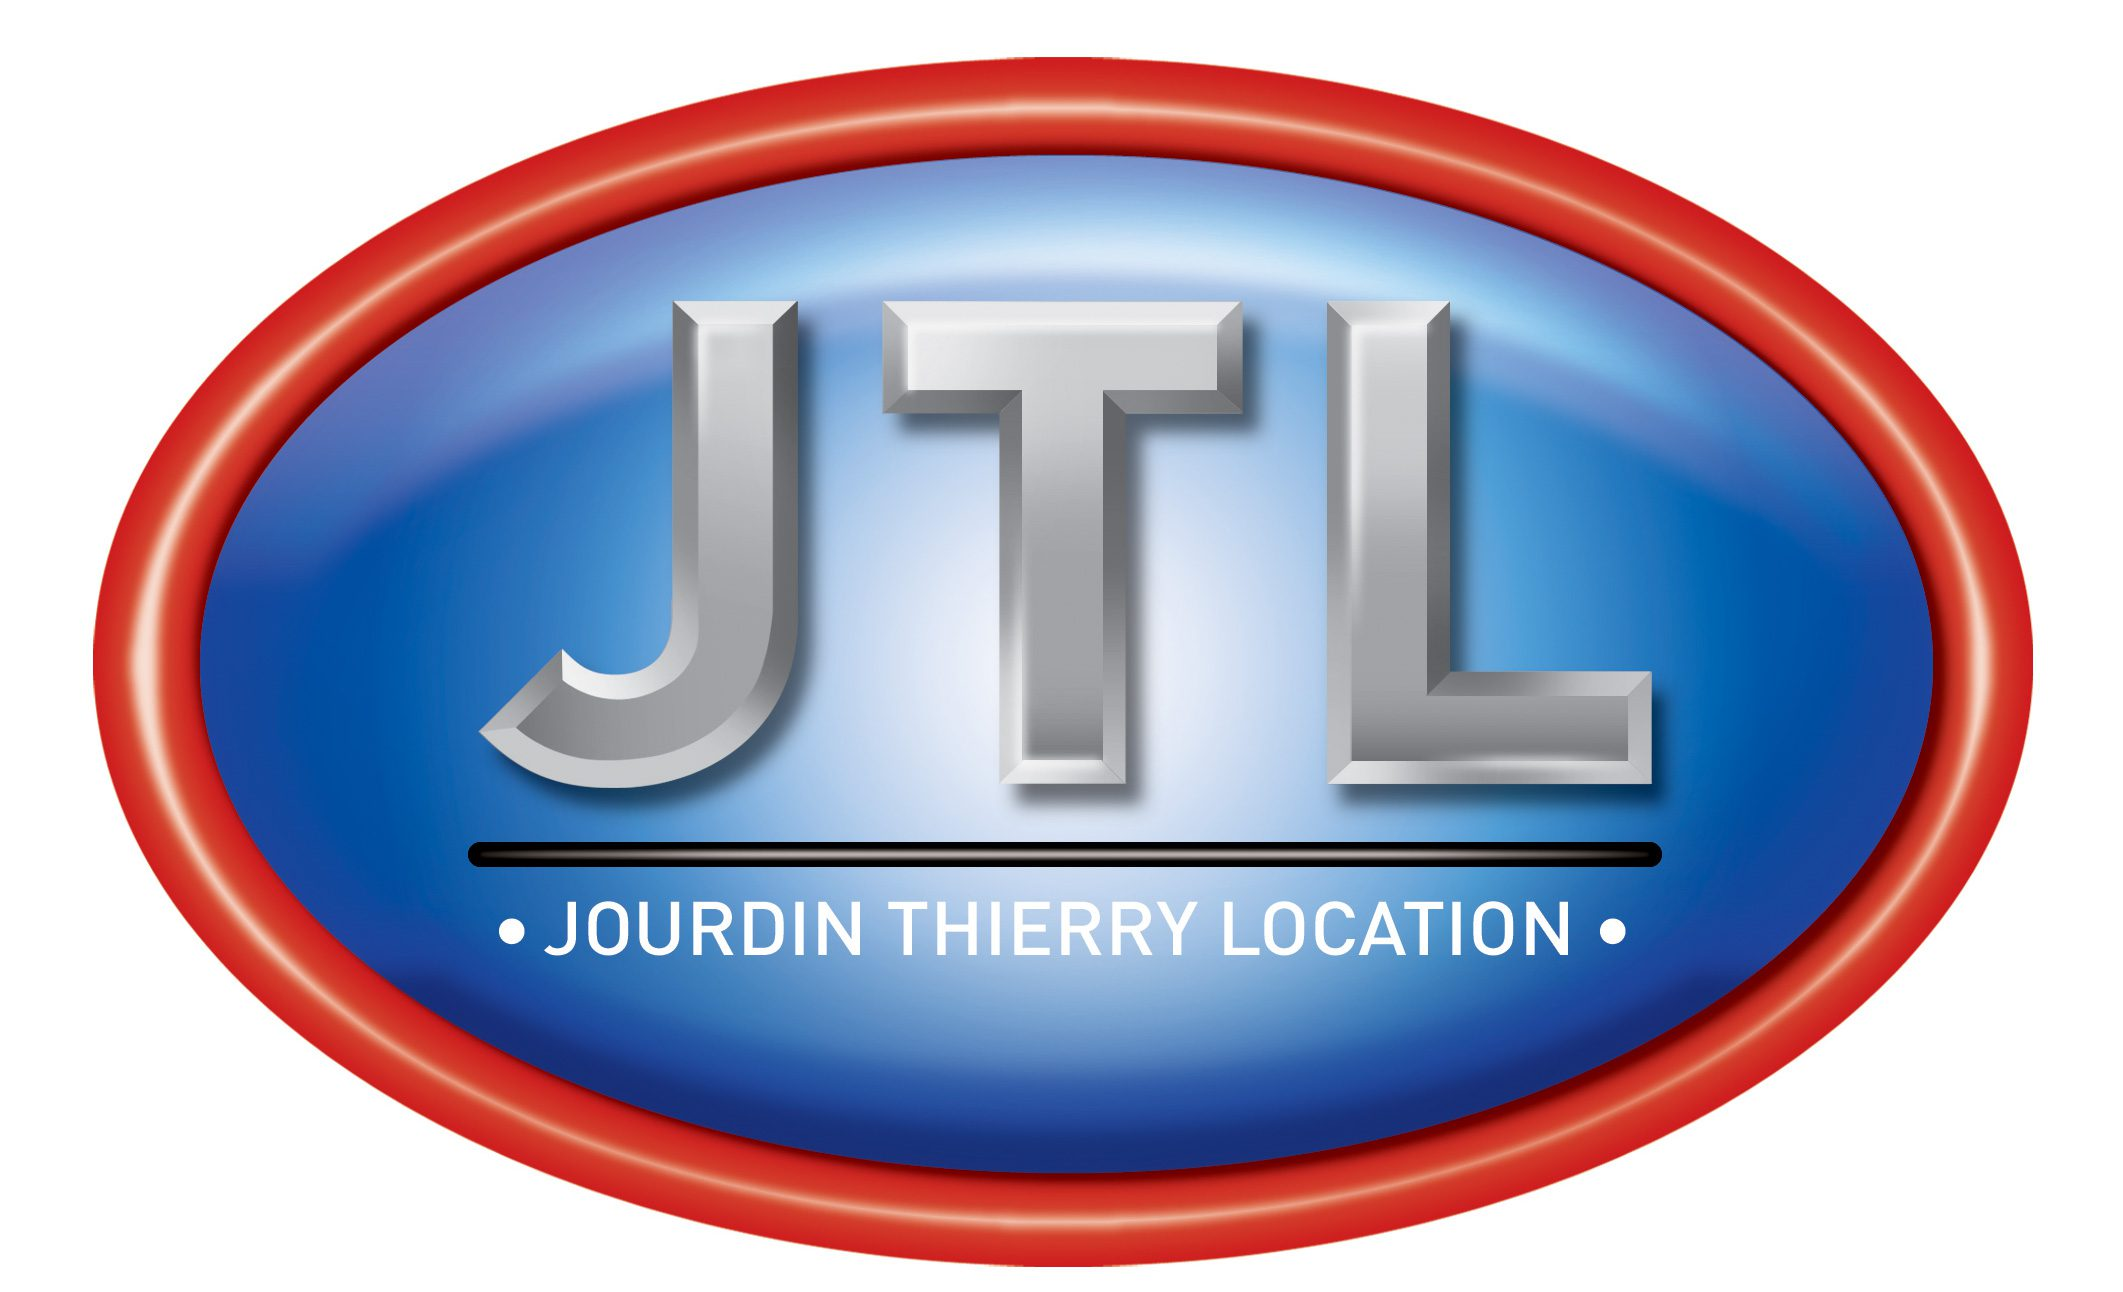 JTL Jourdin Thierry Location